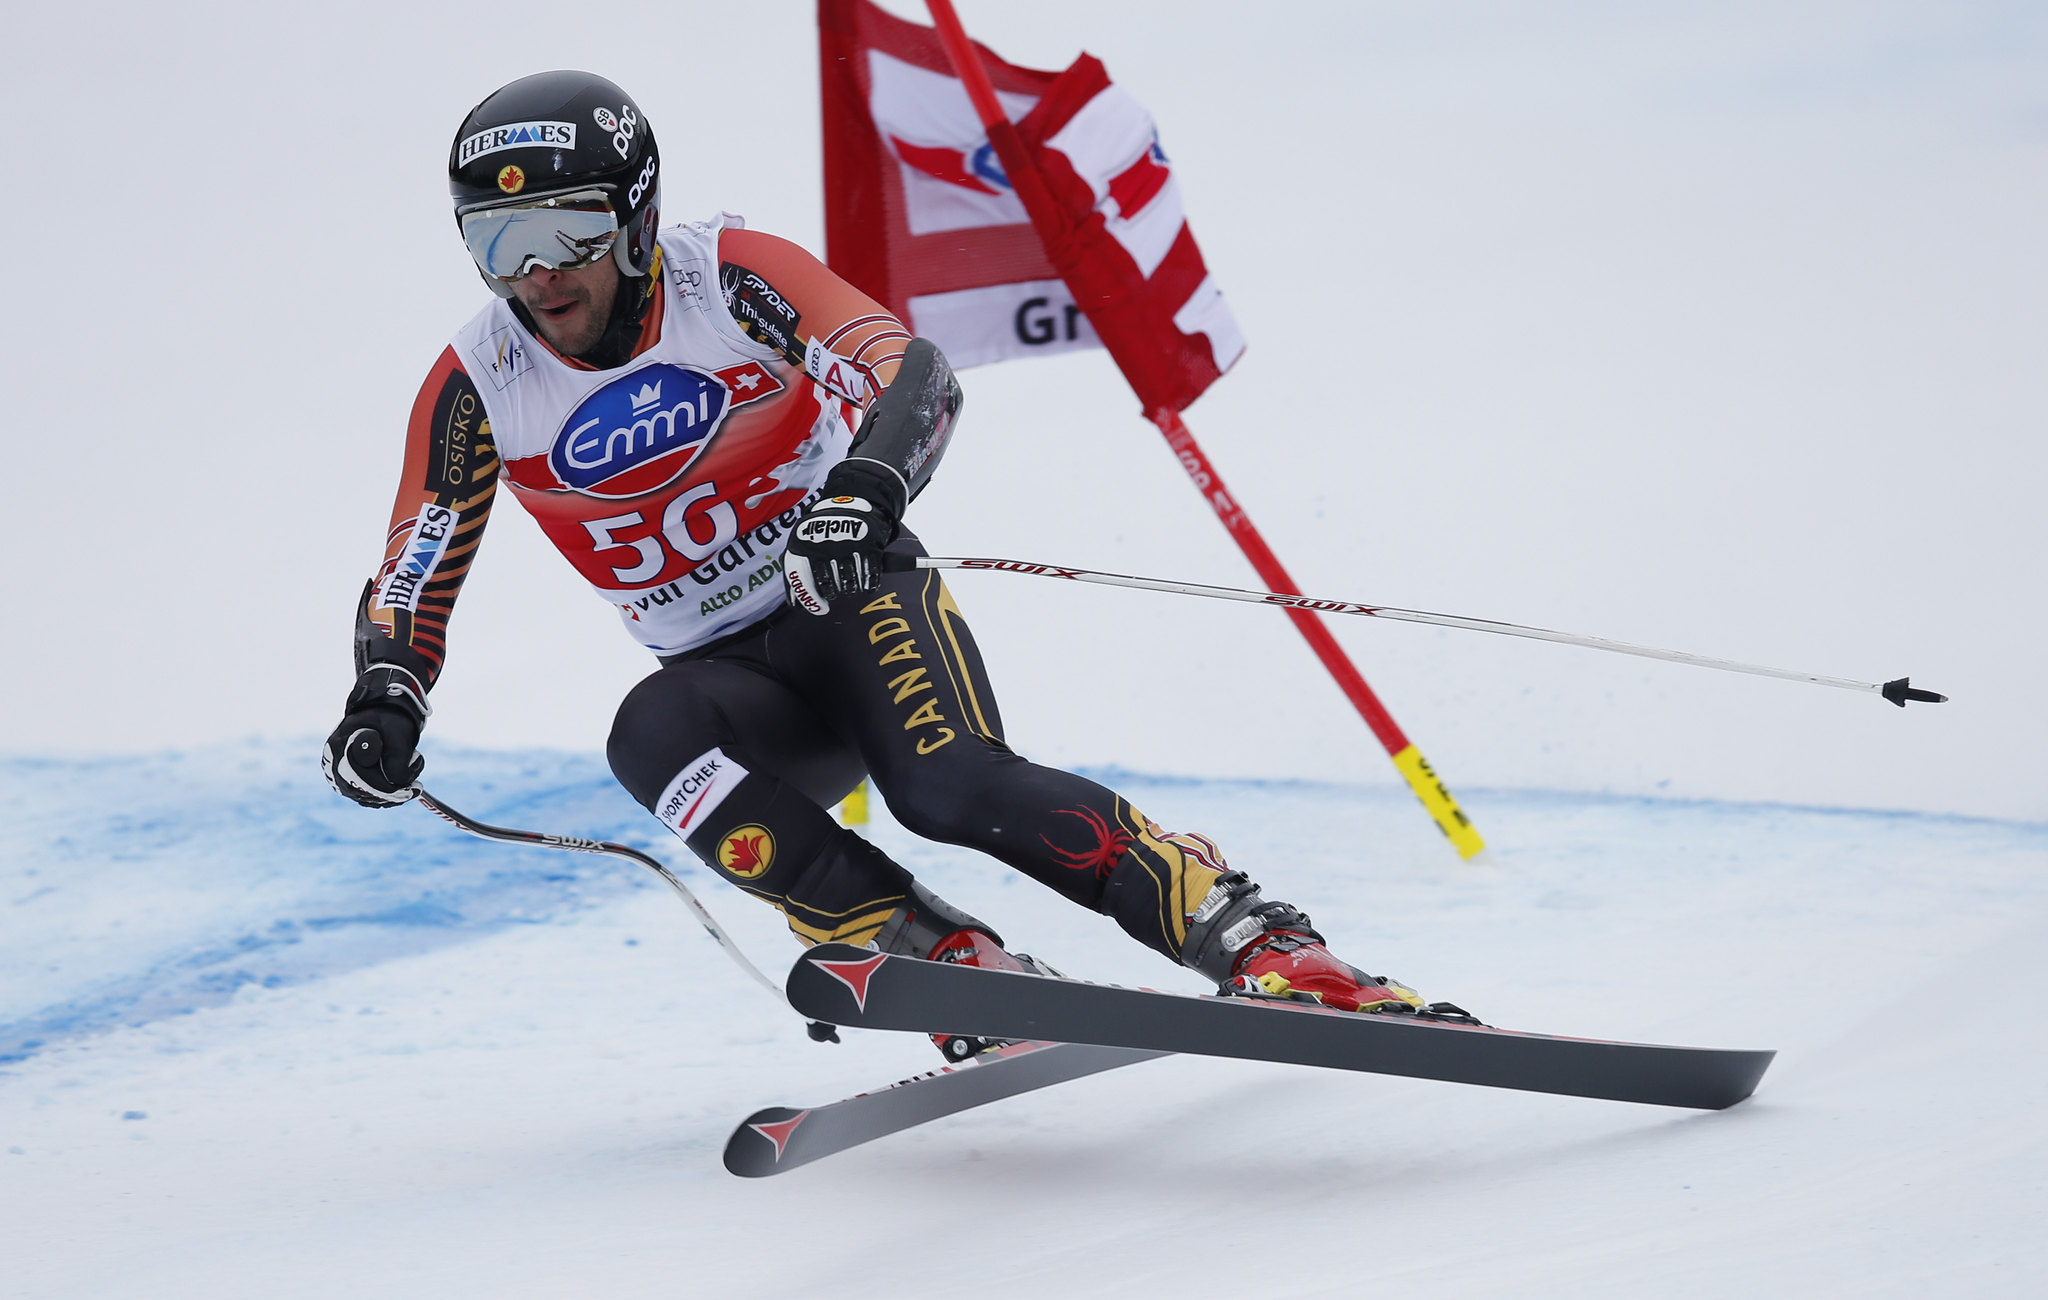 Conrad Pridy charges on during the Super-G in Val Gardena, ITA